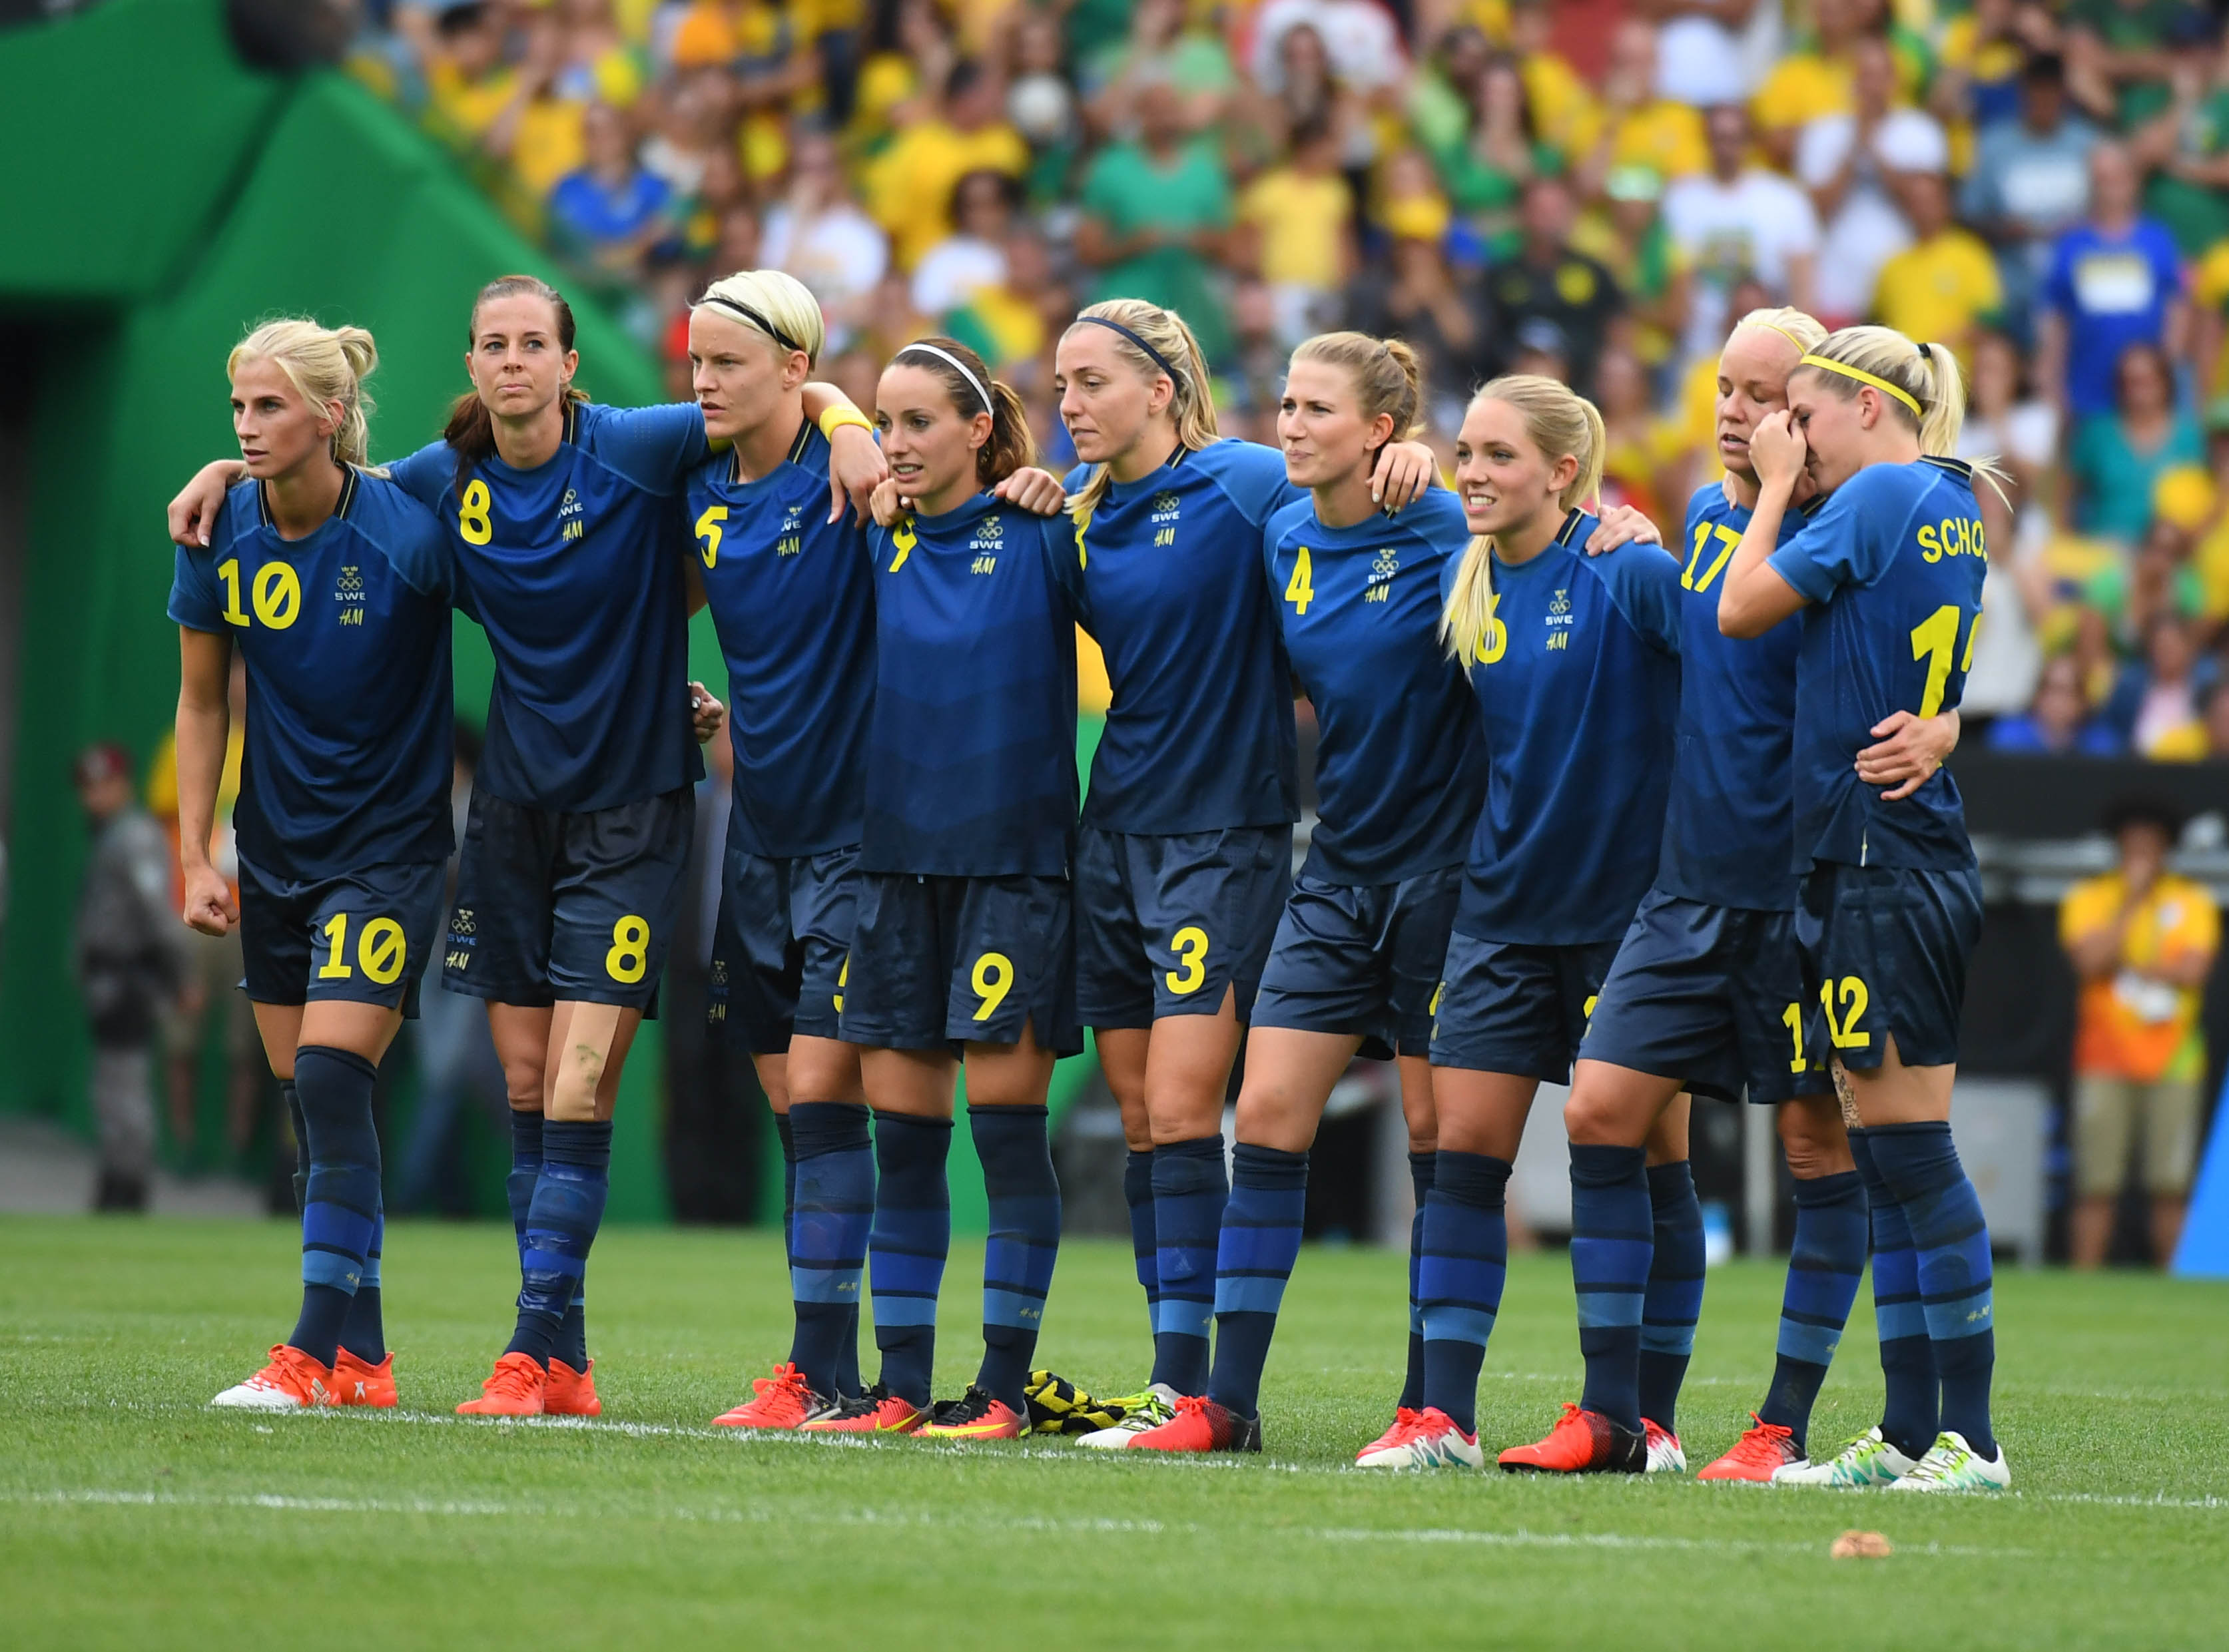 Sweden, in their preferred PK formation.